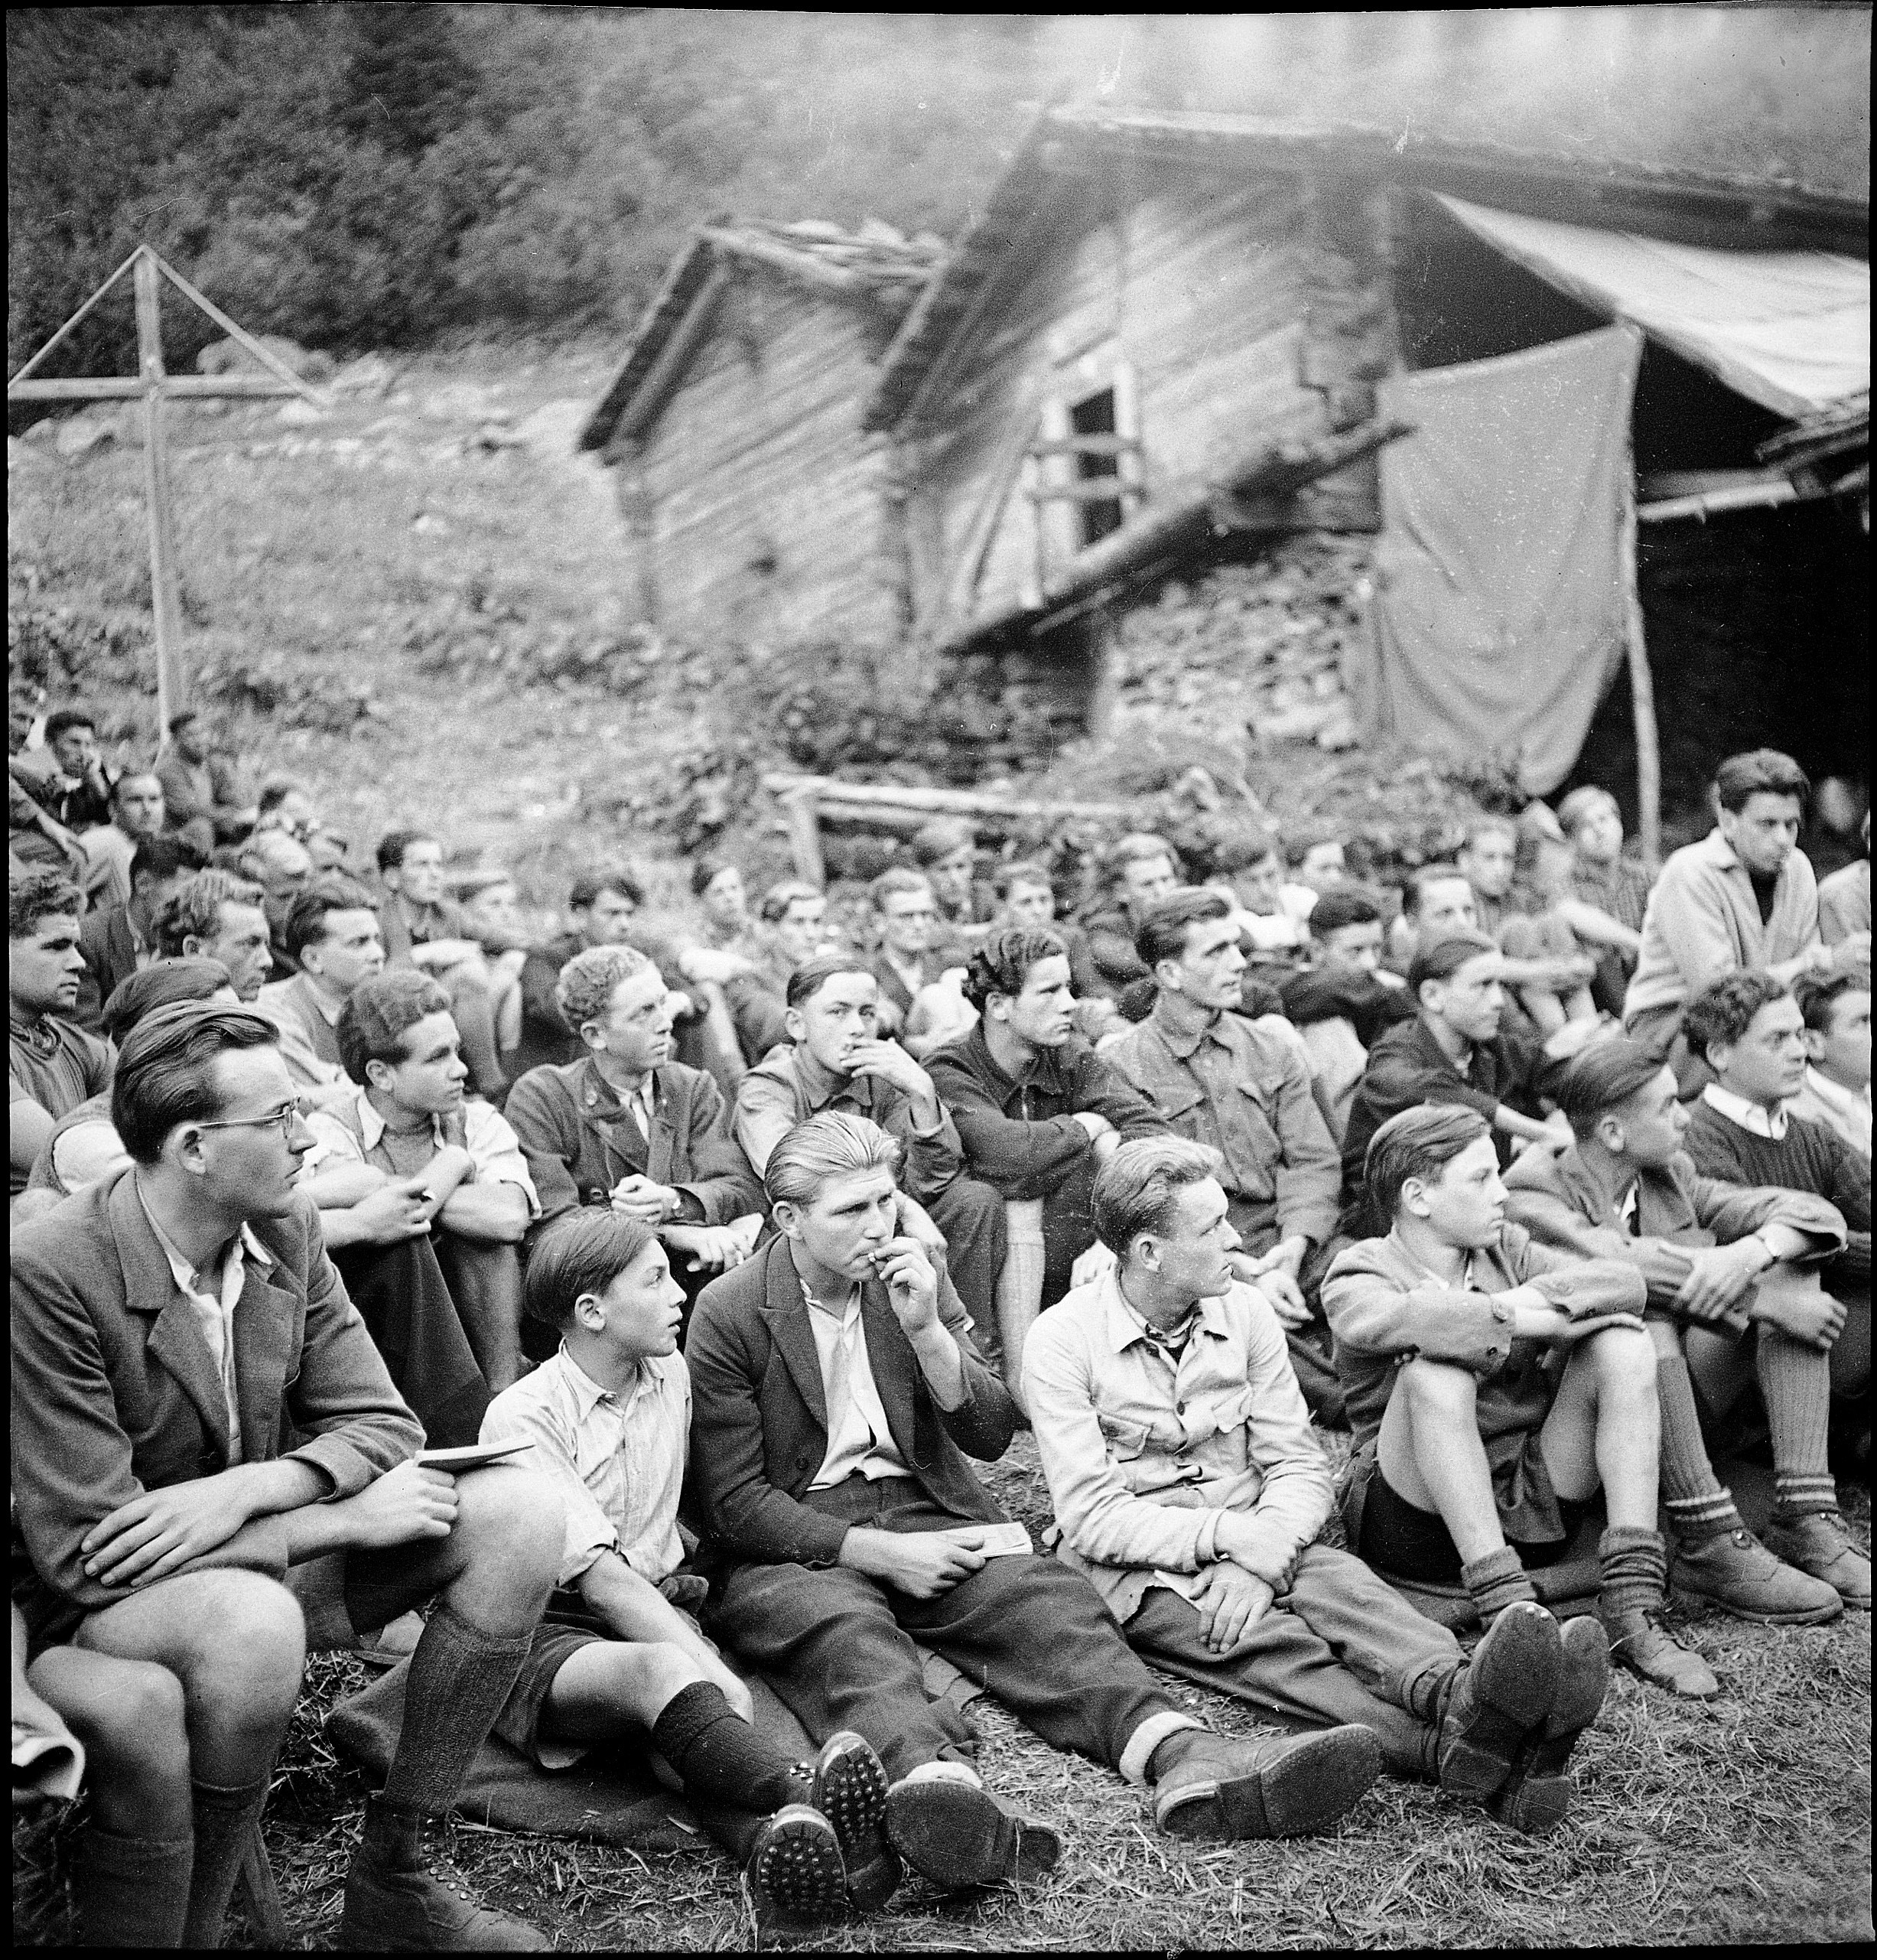 Another camp for young Swiss expats, this one in the Turtmann Valley, 1944.